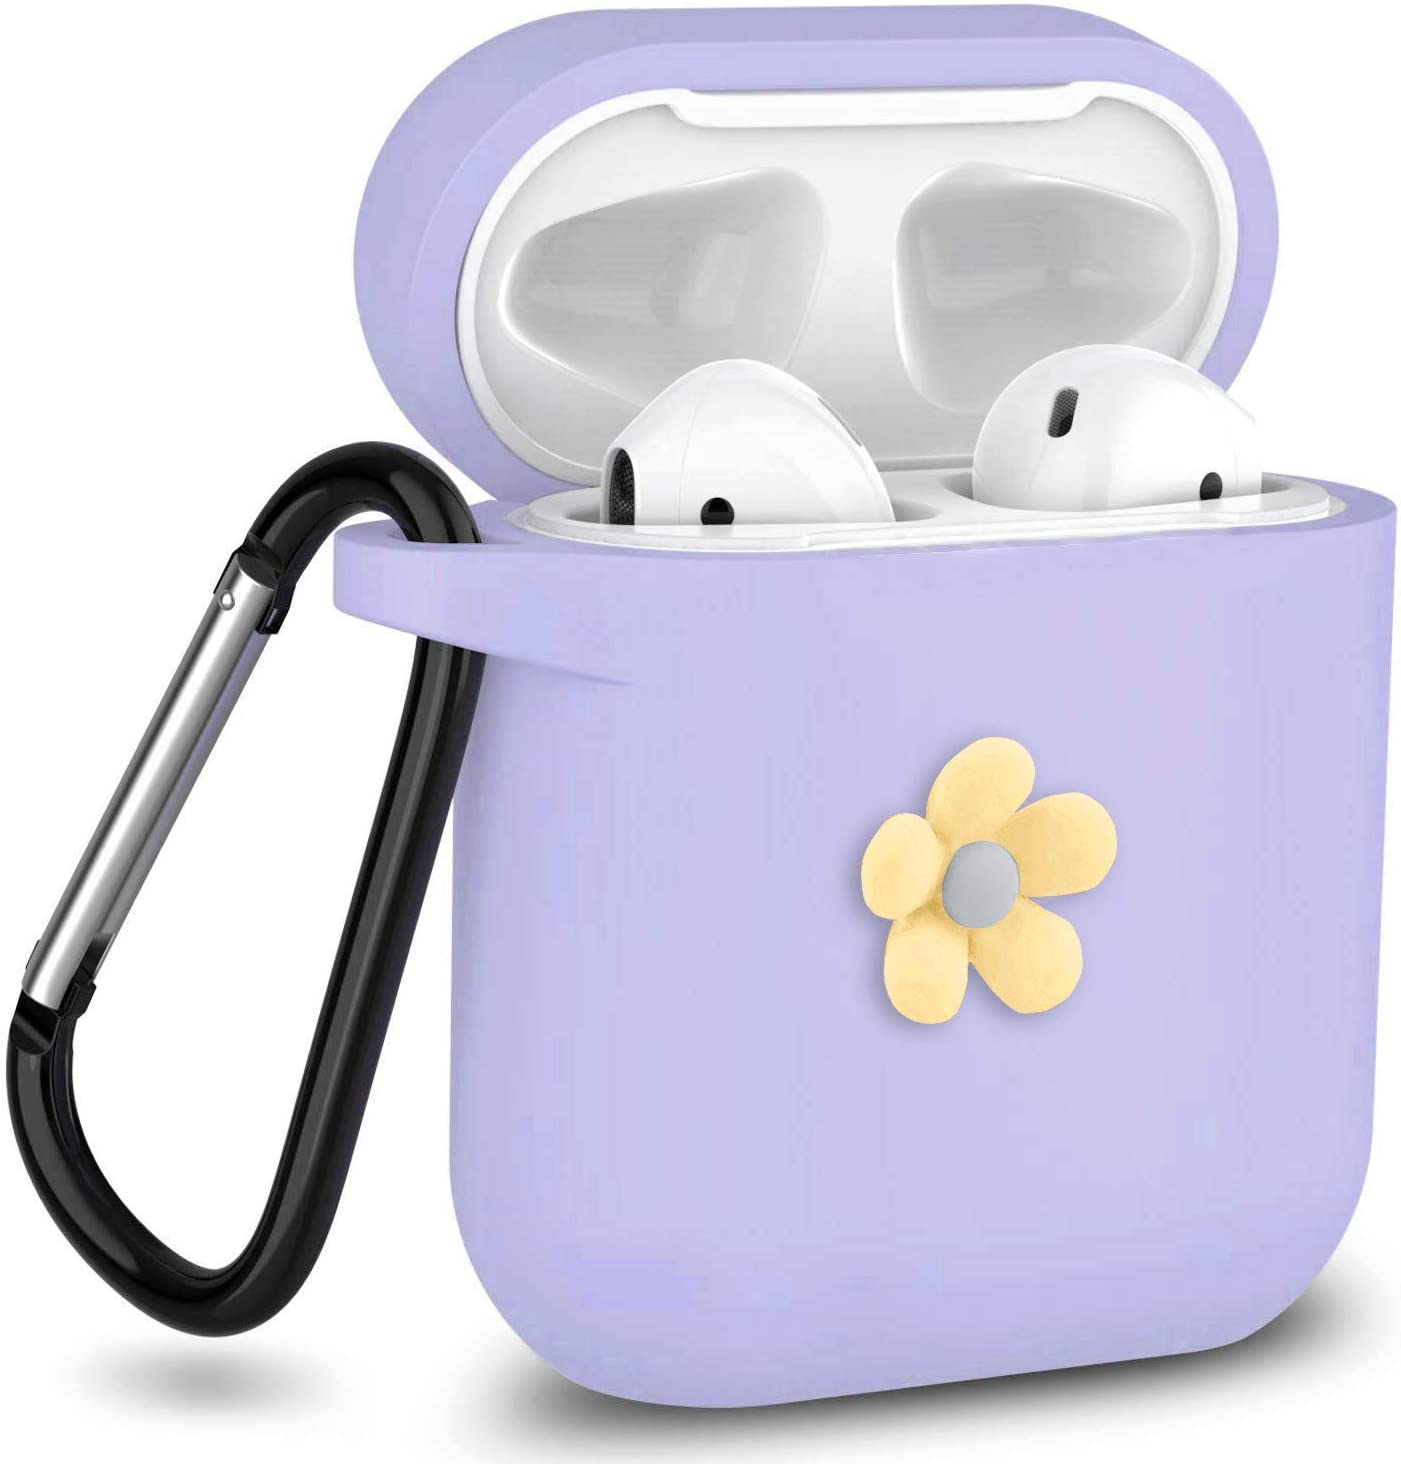 J.west AirPods Case with Chrome Keychain Soft Silicone Protective Case Flower Cover Compatible with Apple Airpods 1 & AirPods 2 [Front LED Not Visible] Charging Case (Purple)